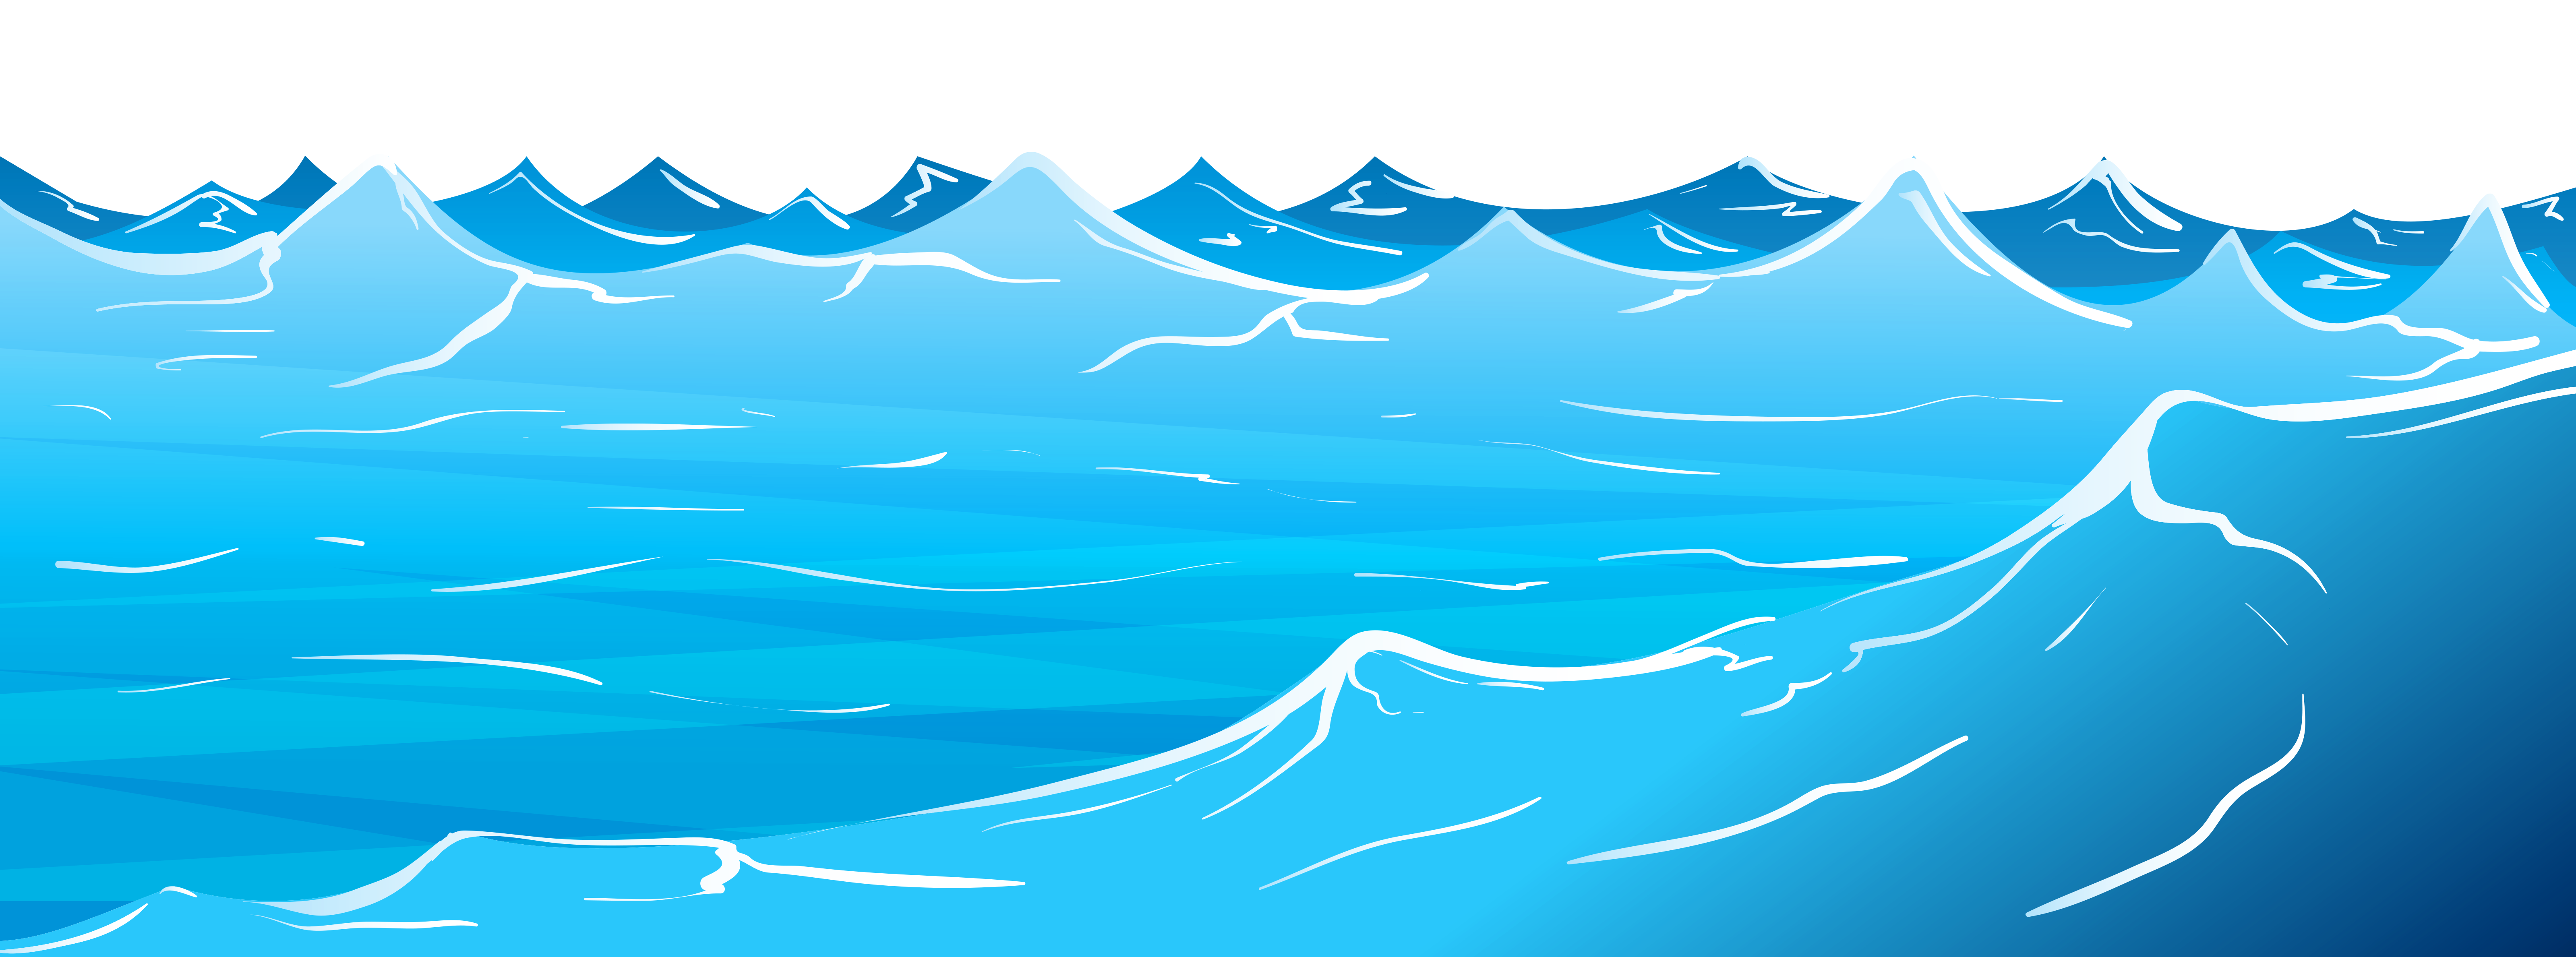 Ocean cartoon clipart images gallery for free download.